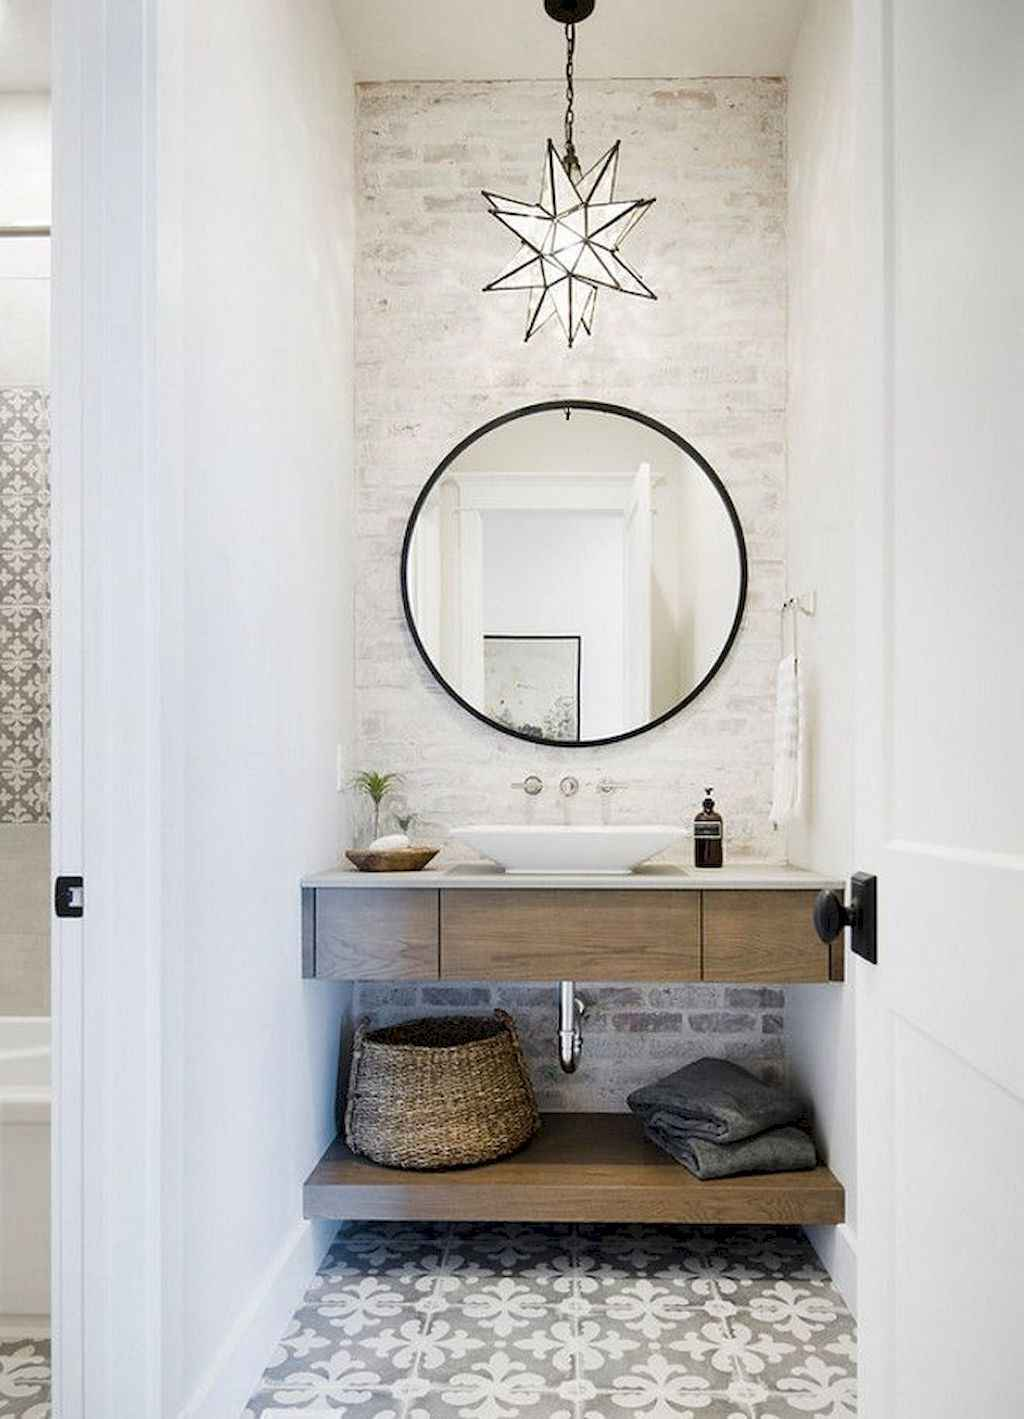 modern white bathroom with circular framed mirror, light wood vanity, patterned tile floor and star shaped pendant light